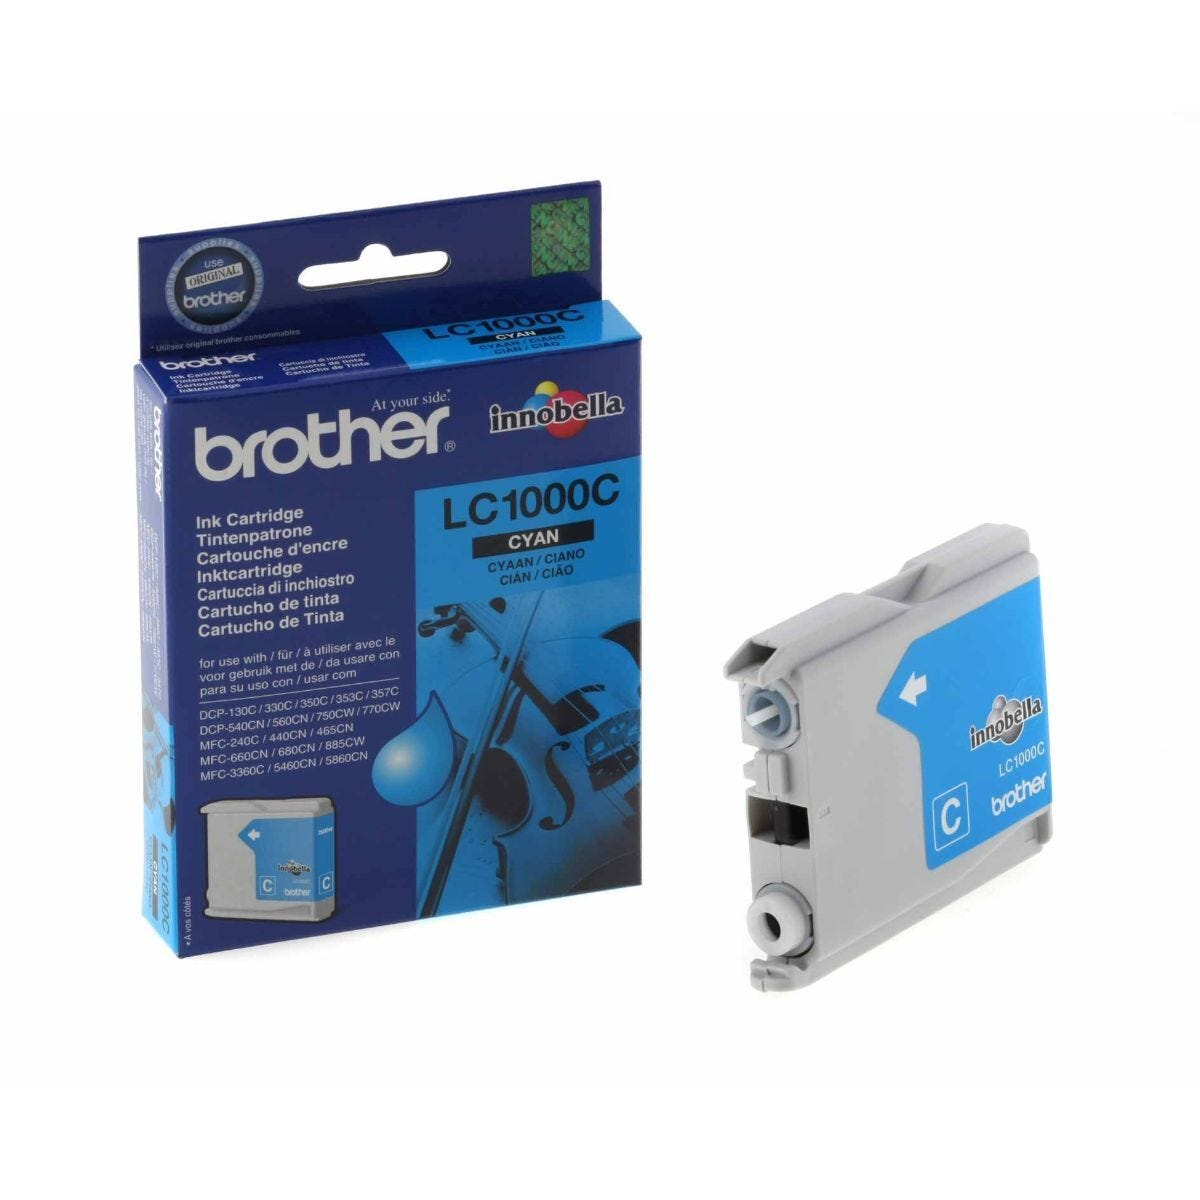 Brother LC1000 Ink Cartridge